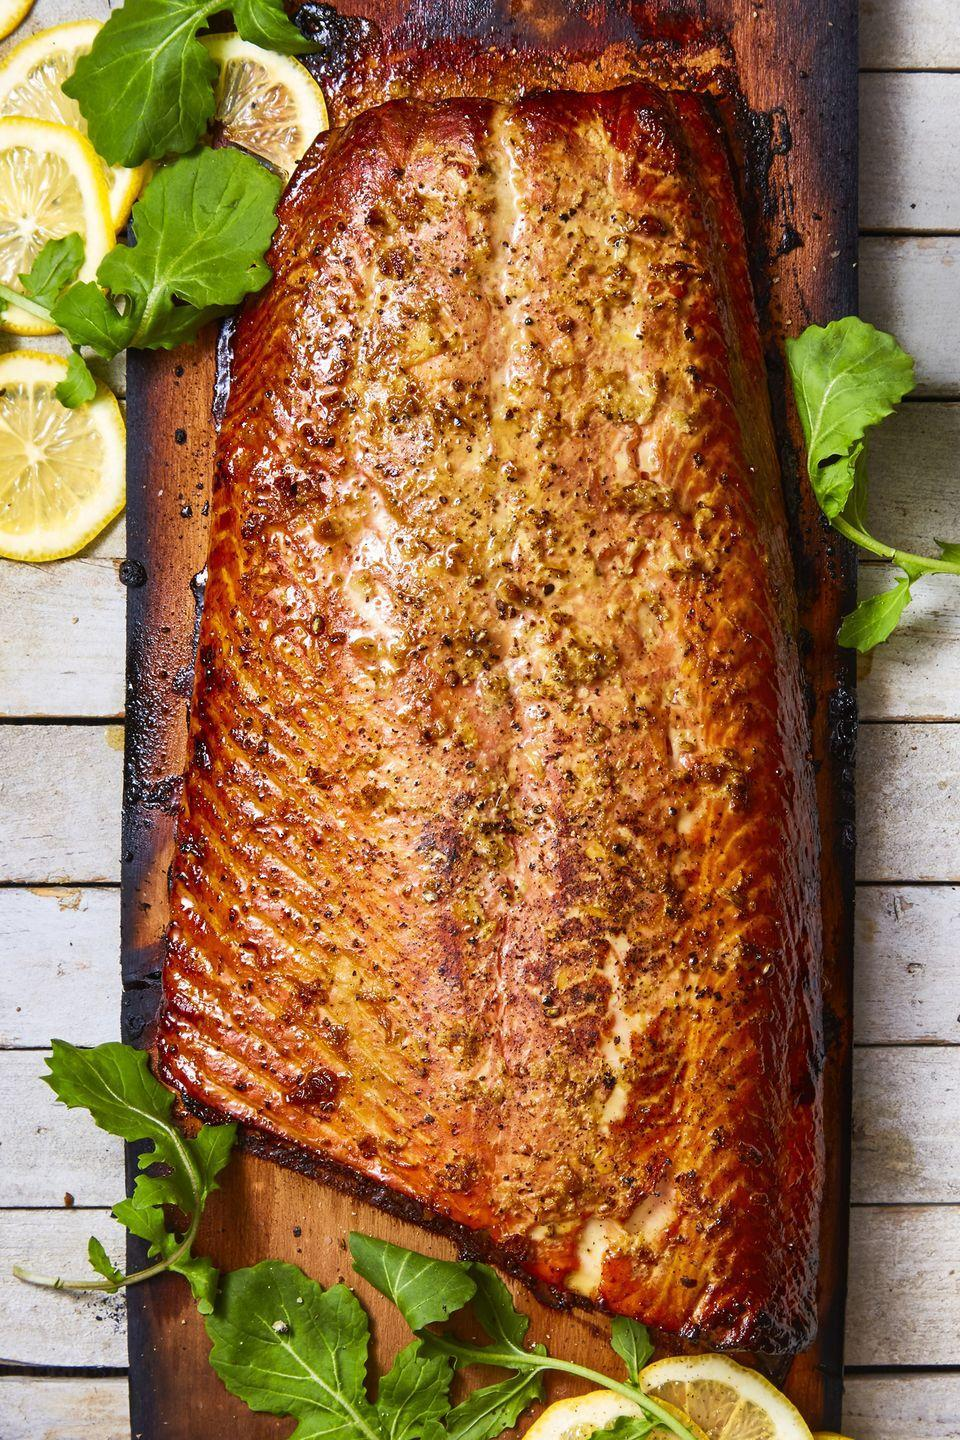 """<p>A wood plank — yes, really — instantly enhances the flavor of even the most basic fish. </p><p><em><a href=""""https://www.goodhousekeeping.com/food-recipes/a44681/honey-ginger-cedar-plank-salmon-recipe/"""" rel=""""nofollow noopener"""" target=""""_blank"""" data-ylk=""""slk:Get the recipe for Honey-Ginger Cedar Plank Salmon »"""" class=""""link rapid-noclick-resp"""">Get the recipe for Honey-Ginger Cedar Plank Salmon »</a></em></p><p><strong>RELATED:</strong> <a href=""""https://www.goodhousekeeping.com/food-recipes/healthy/g448/salmon-recipes/"""" rel=""""nofollow noopener"""" target=""""_blank"""" data-ylk=""""slk:30+ Easy Salmon Recipes to Make for Dinner Tonight"""" class=""""link rapid-noclick-resp"""">30+ Easy Salmon Recipes to Make for Dinner Tonight</a></p>"""